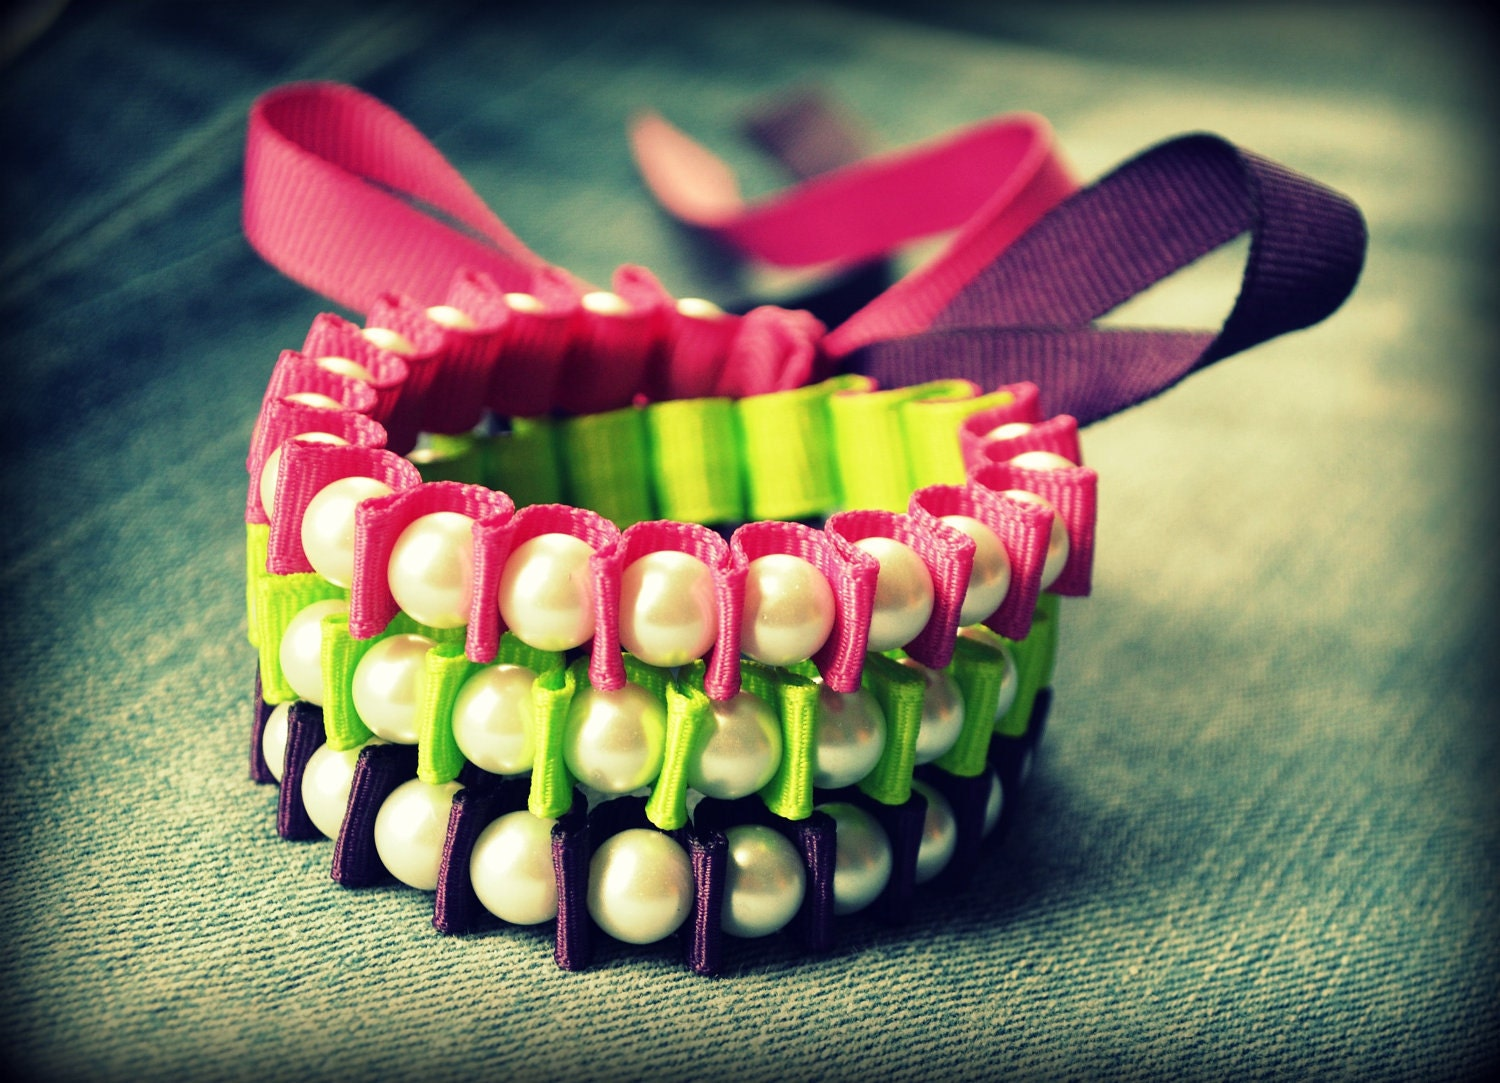 Wrap Bracelet - The Valerie Colorblock Wrap Bracelet - in Wildberry, Lypple , and Grape